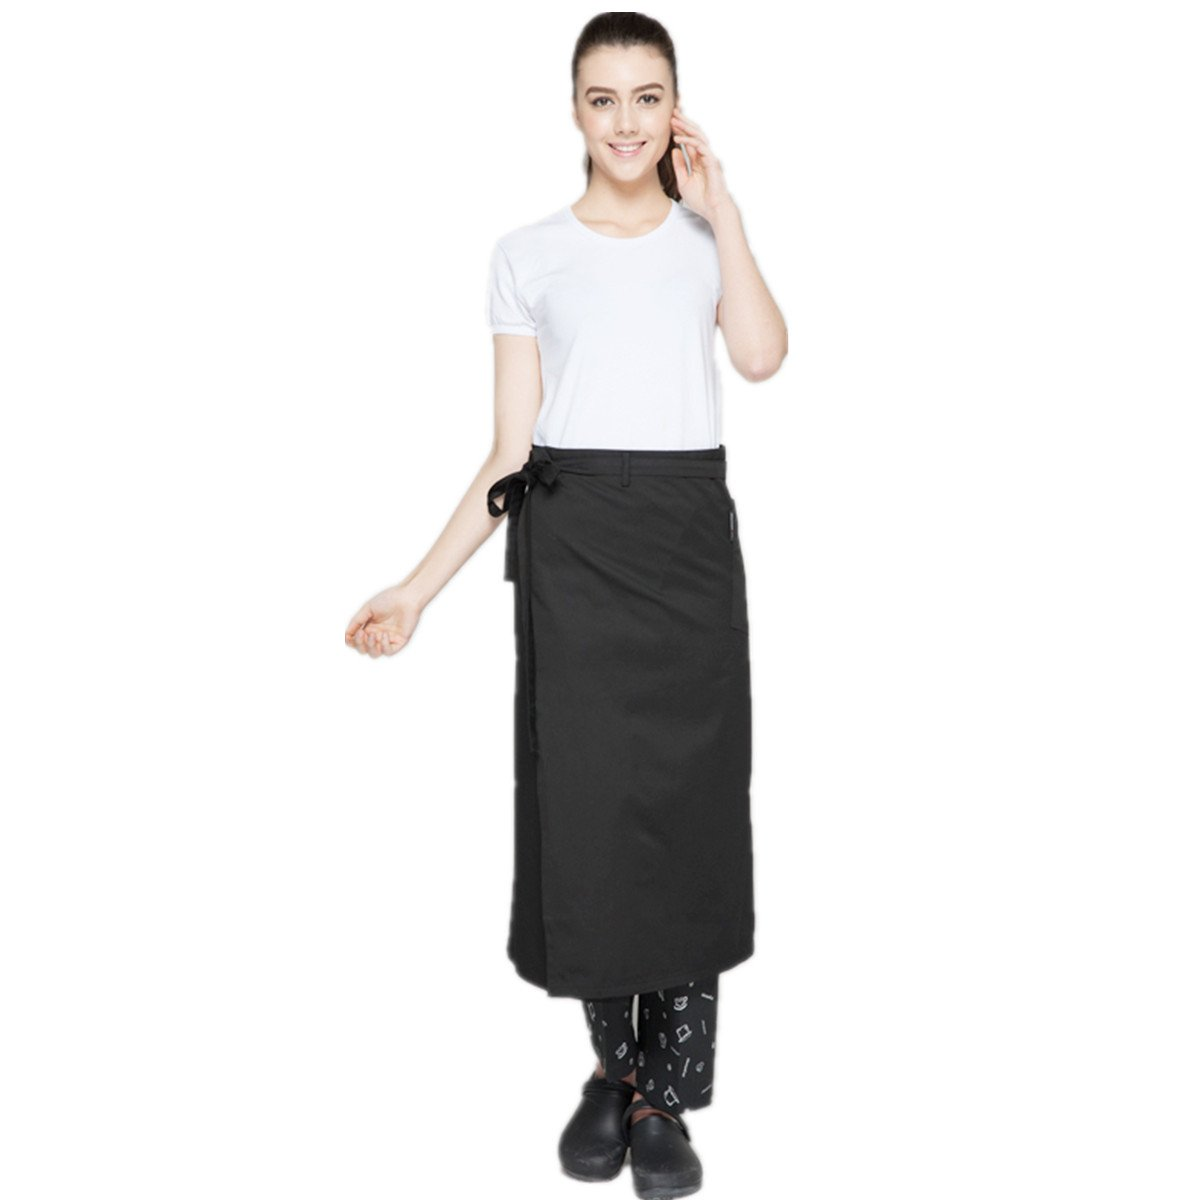 XINFU Chef Cooking Apron Hotel Waiter Apron Home Furnishing Short Kitchen Restaurant Work Black Apron